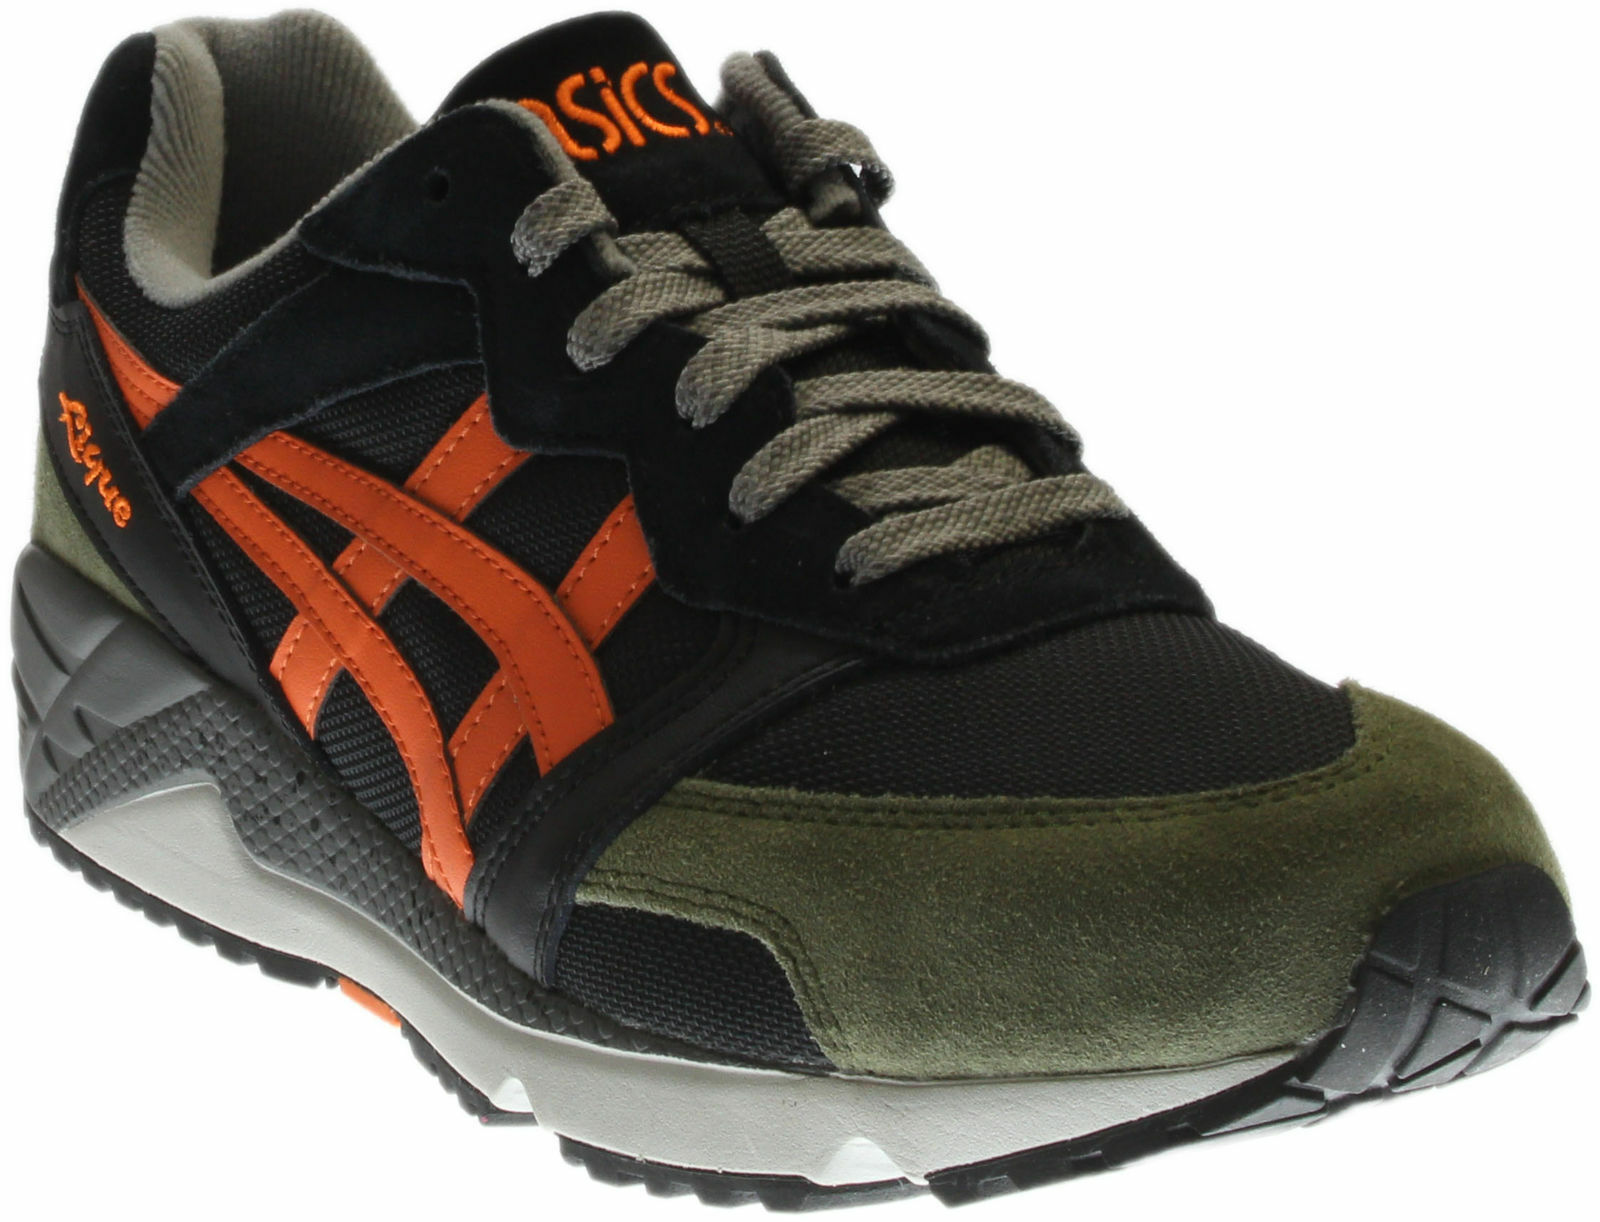 MENS ASICS TIGER GEL-LIQUE BLK ORG ARMY GREEN ATHLETIC SHOES H6H1L-9009 sneakers